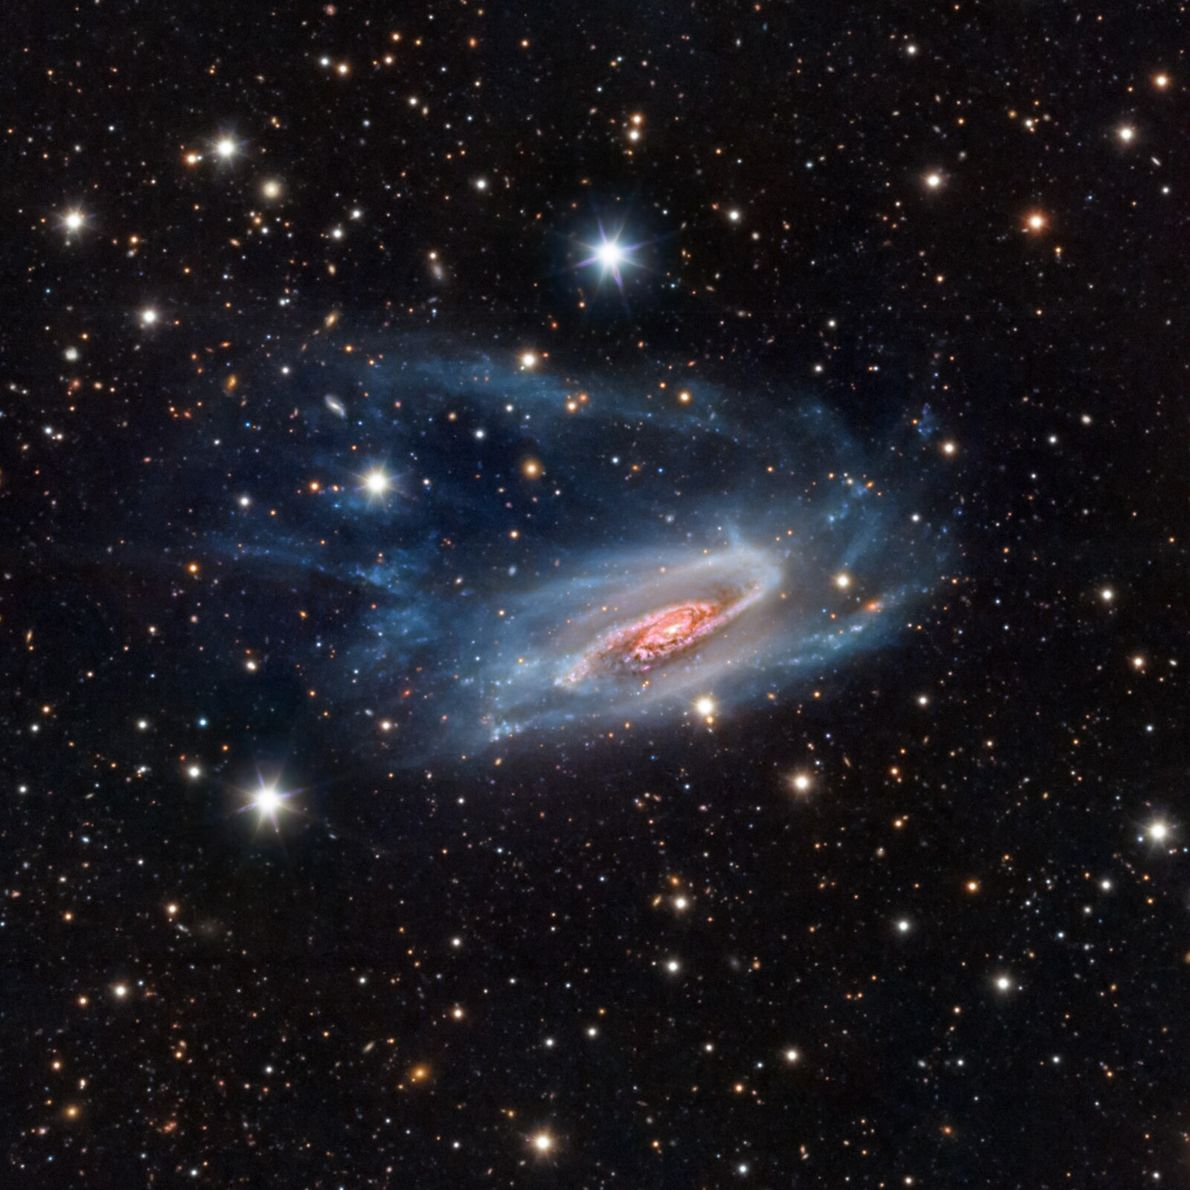 A spiral galaxy 65 million light years away, this image was captured from a telescope installation ...